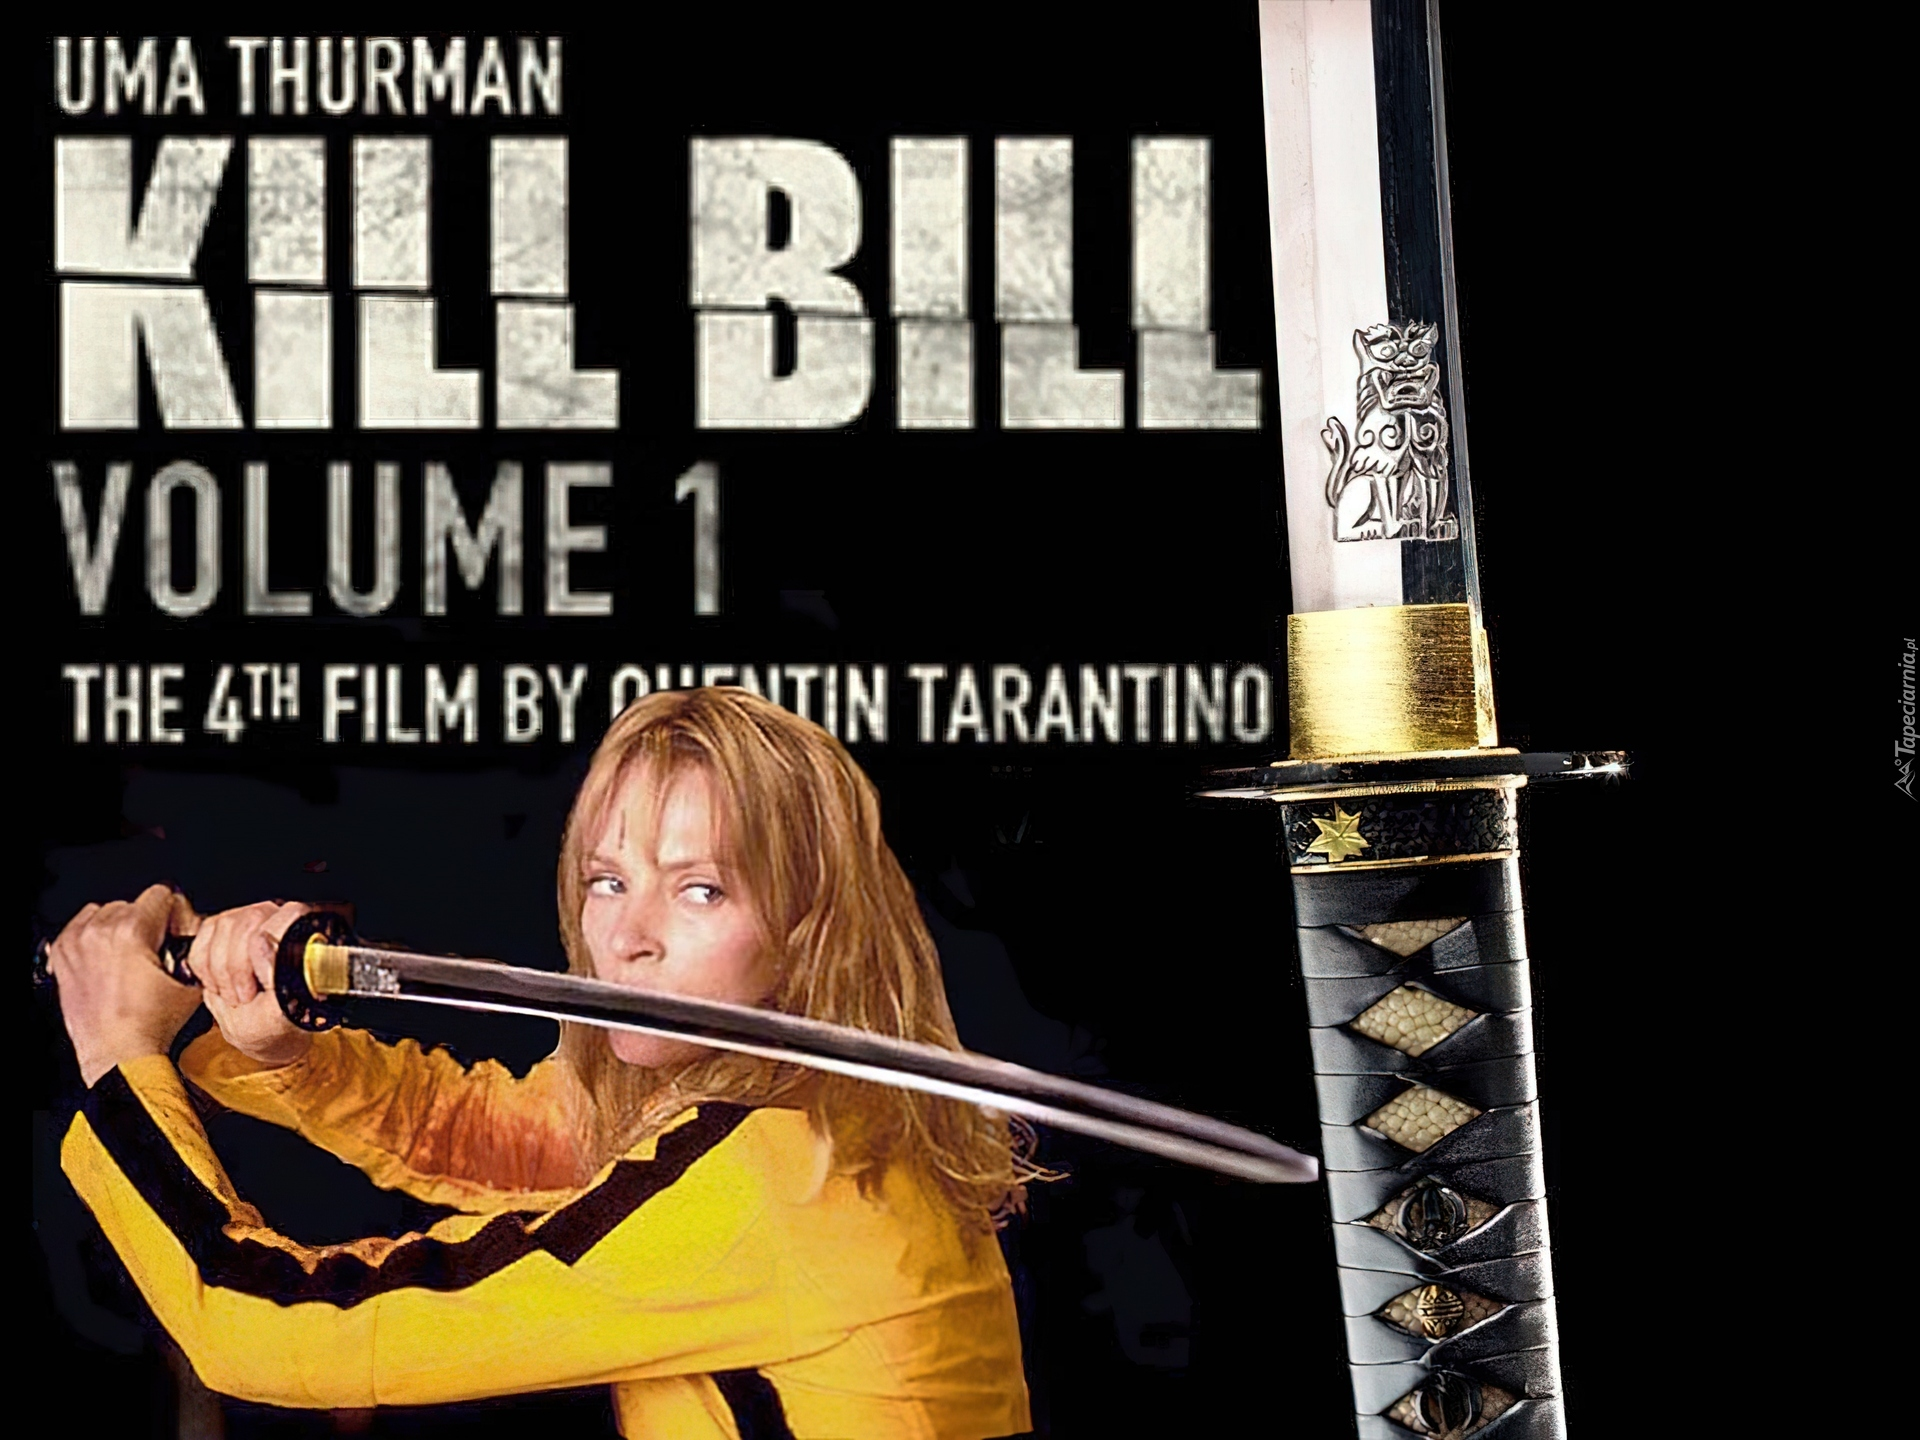 Uma Thurman, Miecz, Kill Bill 1